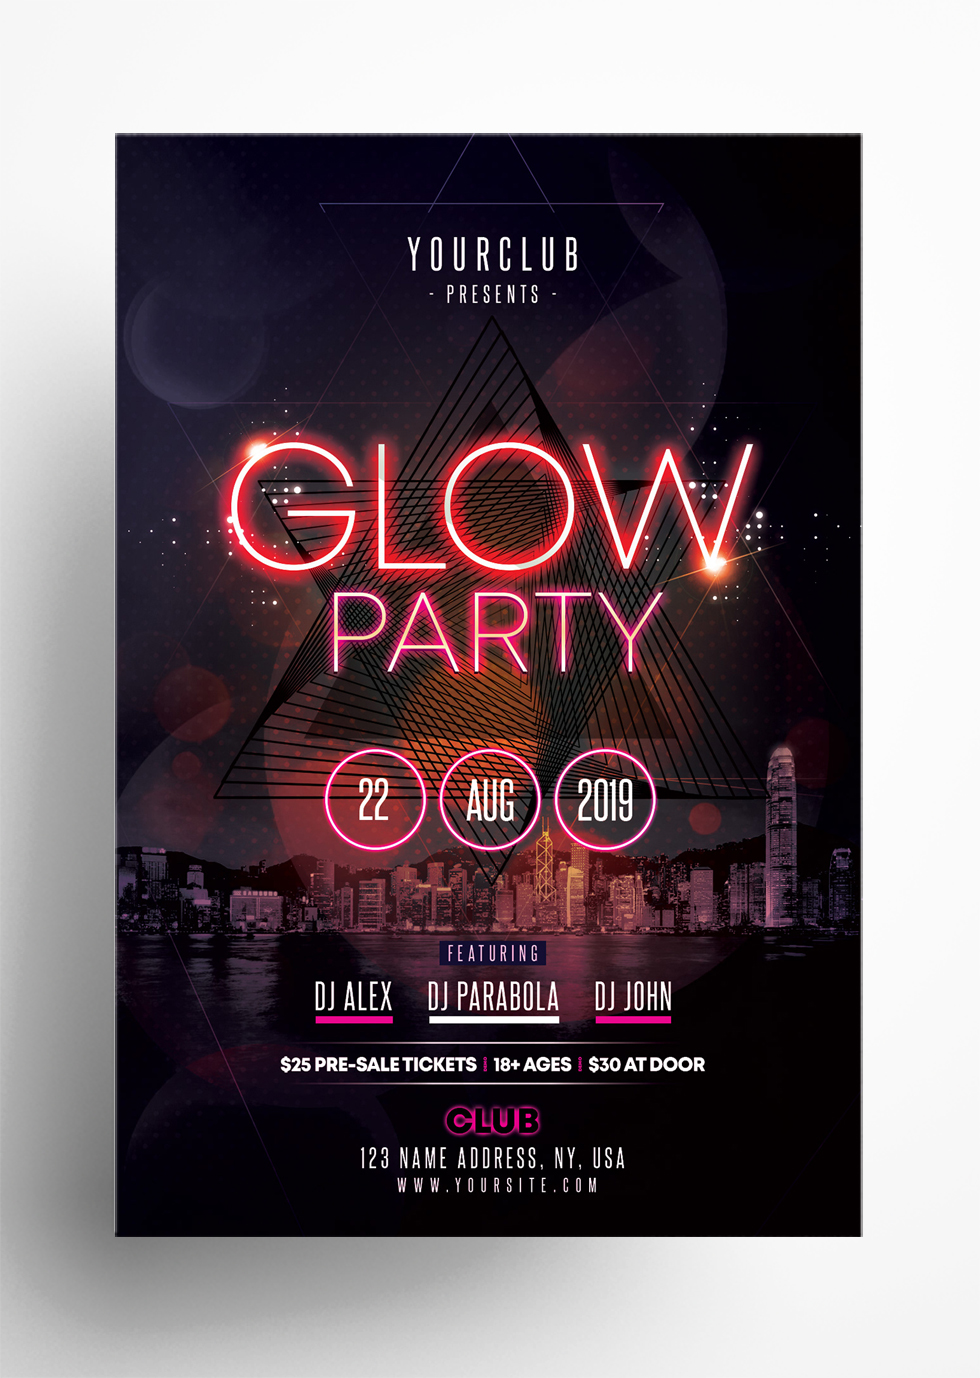 Glow Party - Free PSD Flyer Template